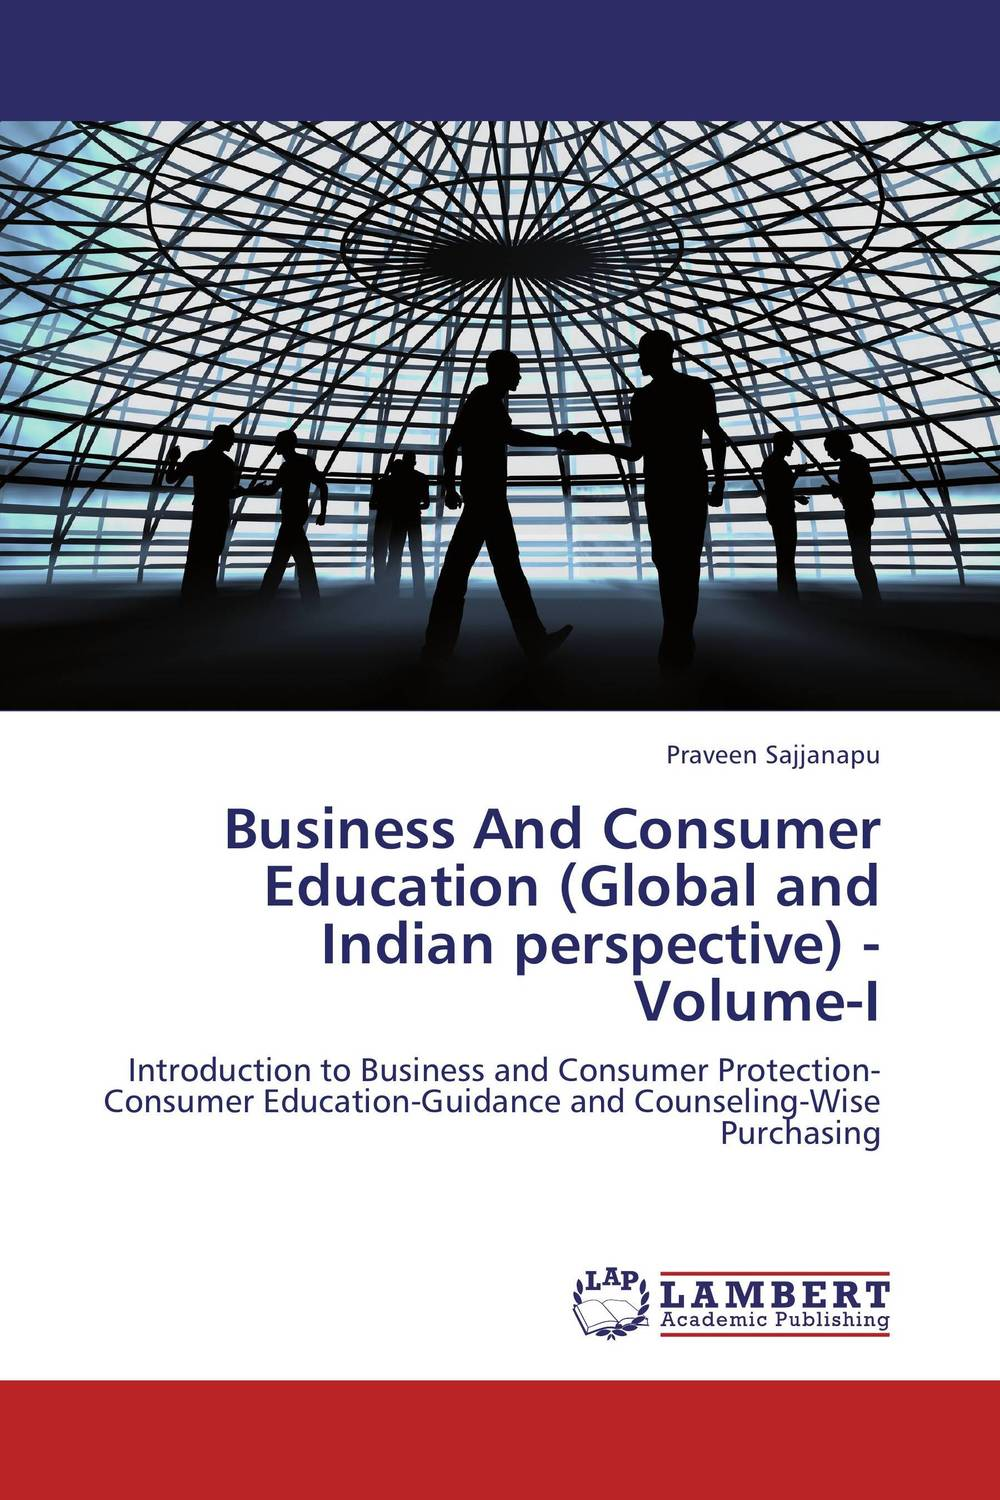 Business And Consumer Education (Global and Indian perspective) - Volume-I 3mbi50sx 120 02 special offer seckill consumer protection of business integrity quality assurance 100